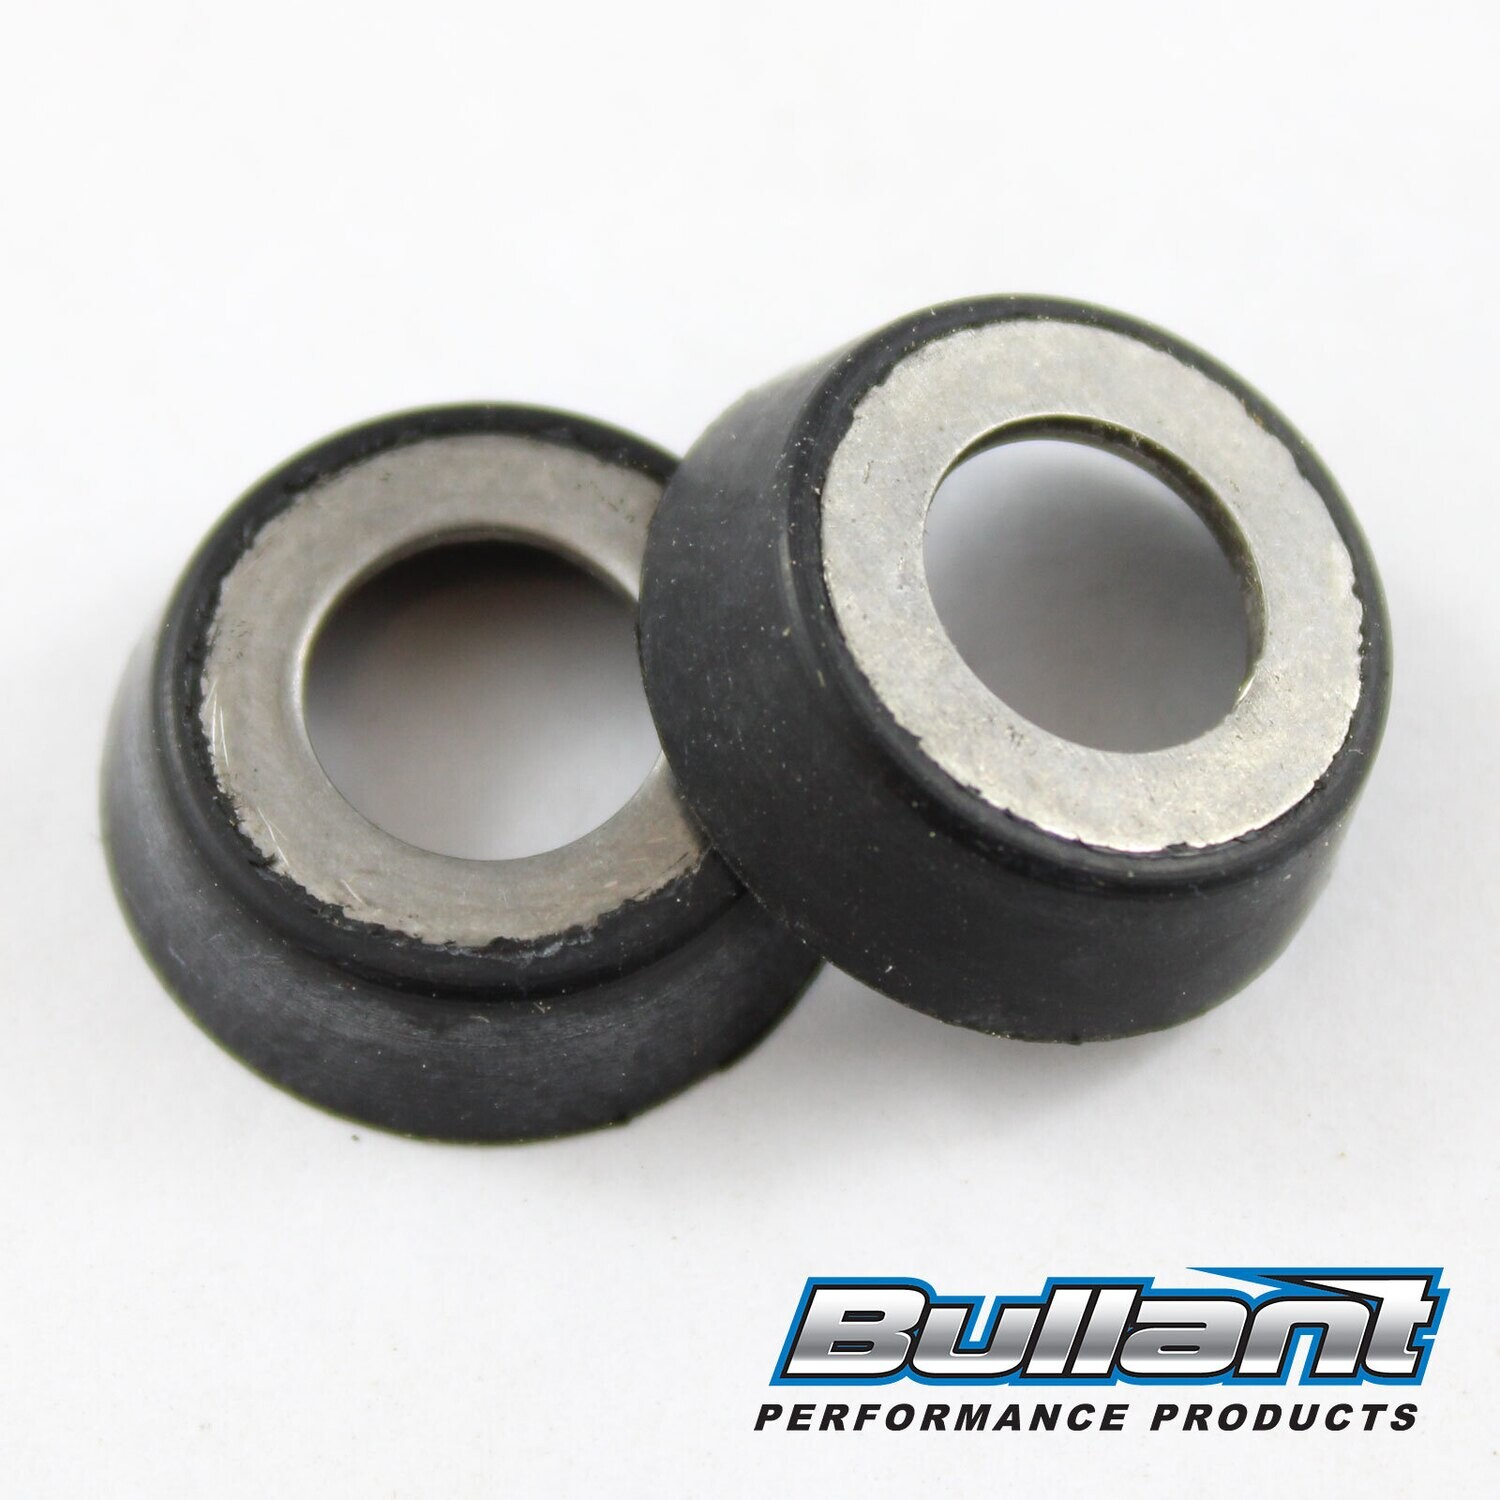 Rod End Rubber Seals for 5/16